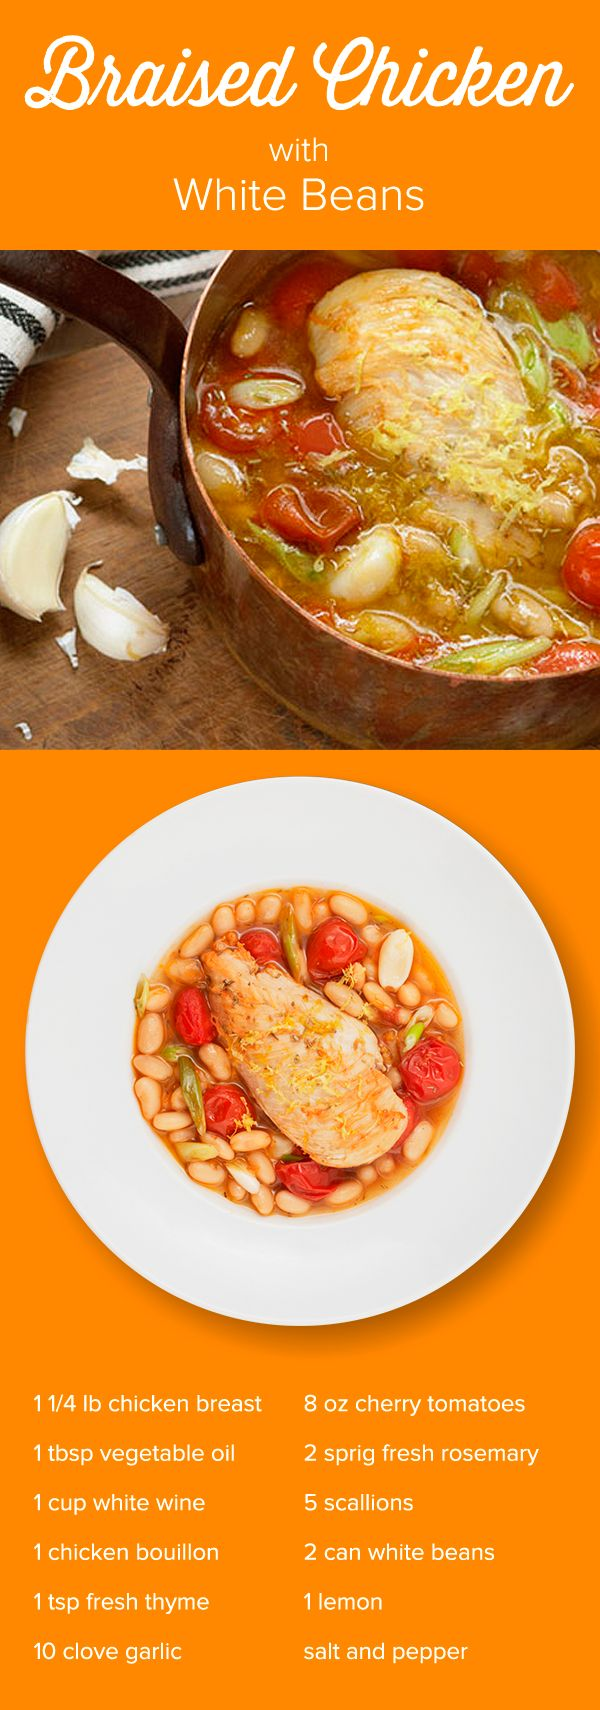 Who doesn't need a little more Mediterranean flair? Braised Chicken with White Beans and Tomatoes is a welcome break from boring dinners! This is ust one of the creative chef-designed 1/2 hr recipes you'll prepare when you try Just Add Cooking. Use Promo Code JUSTADDPINTEREST to get $30 off your first meal kit delivery.